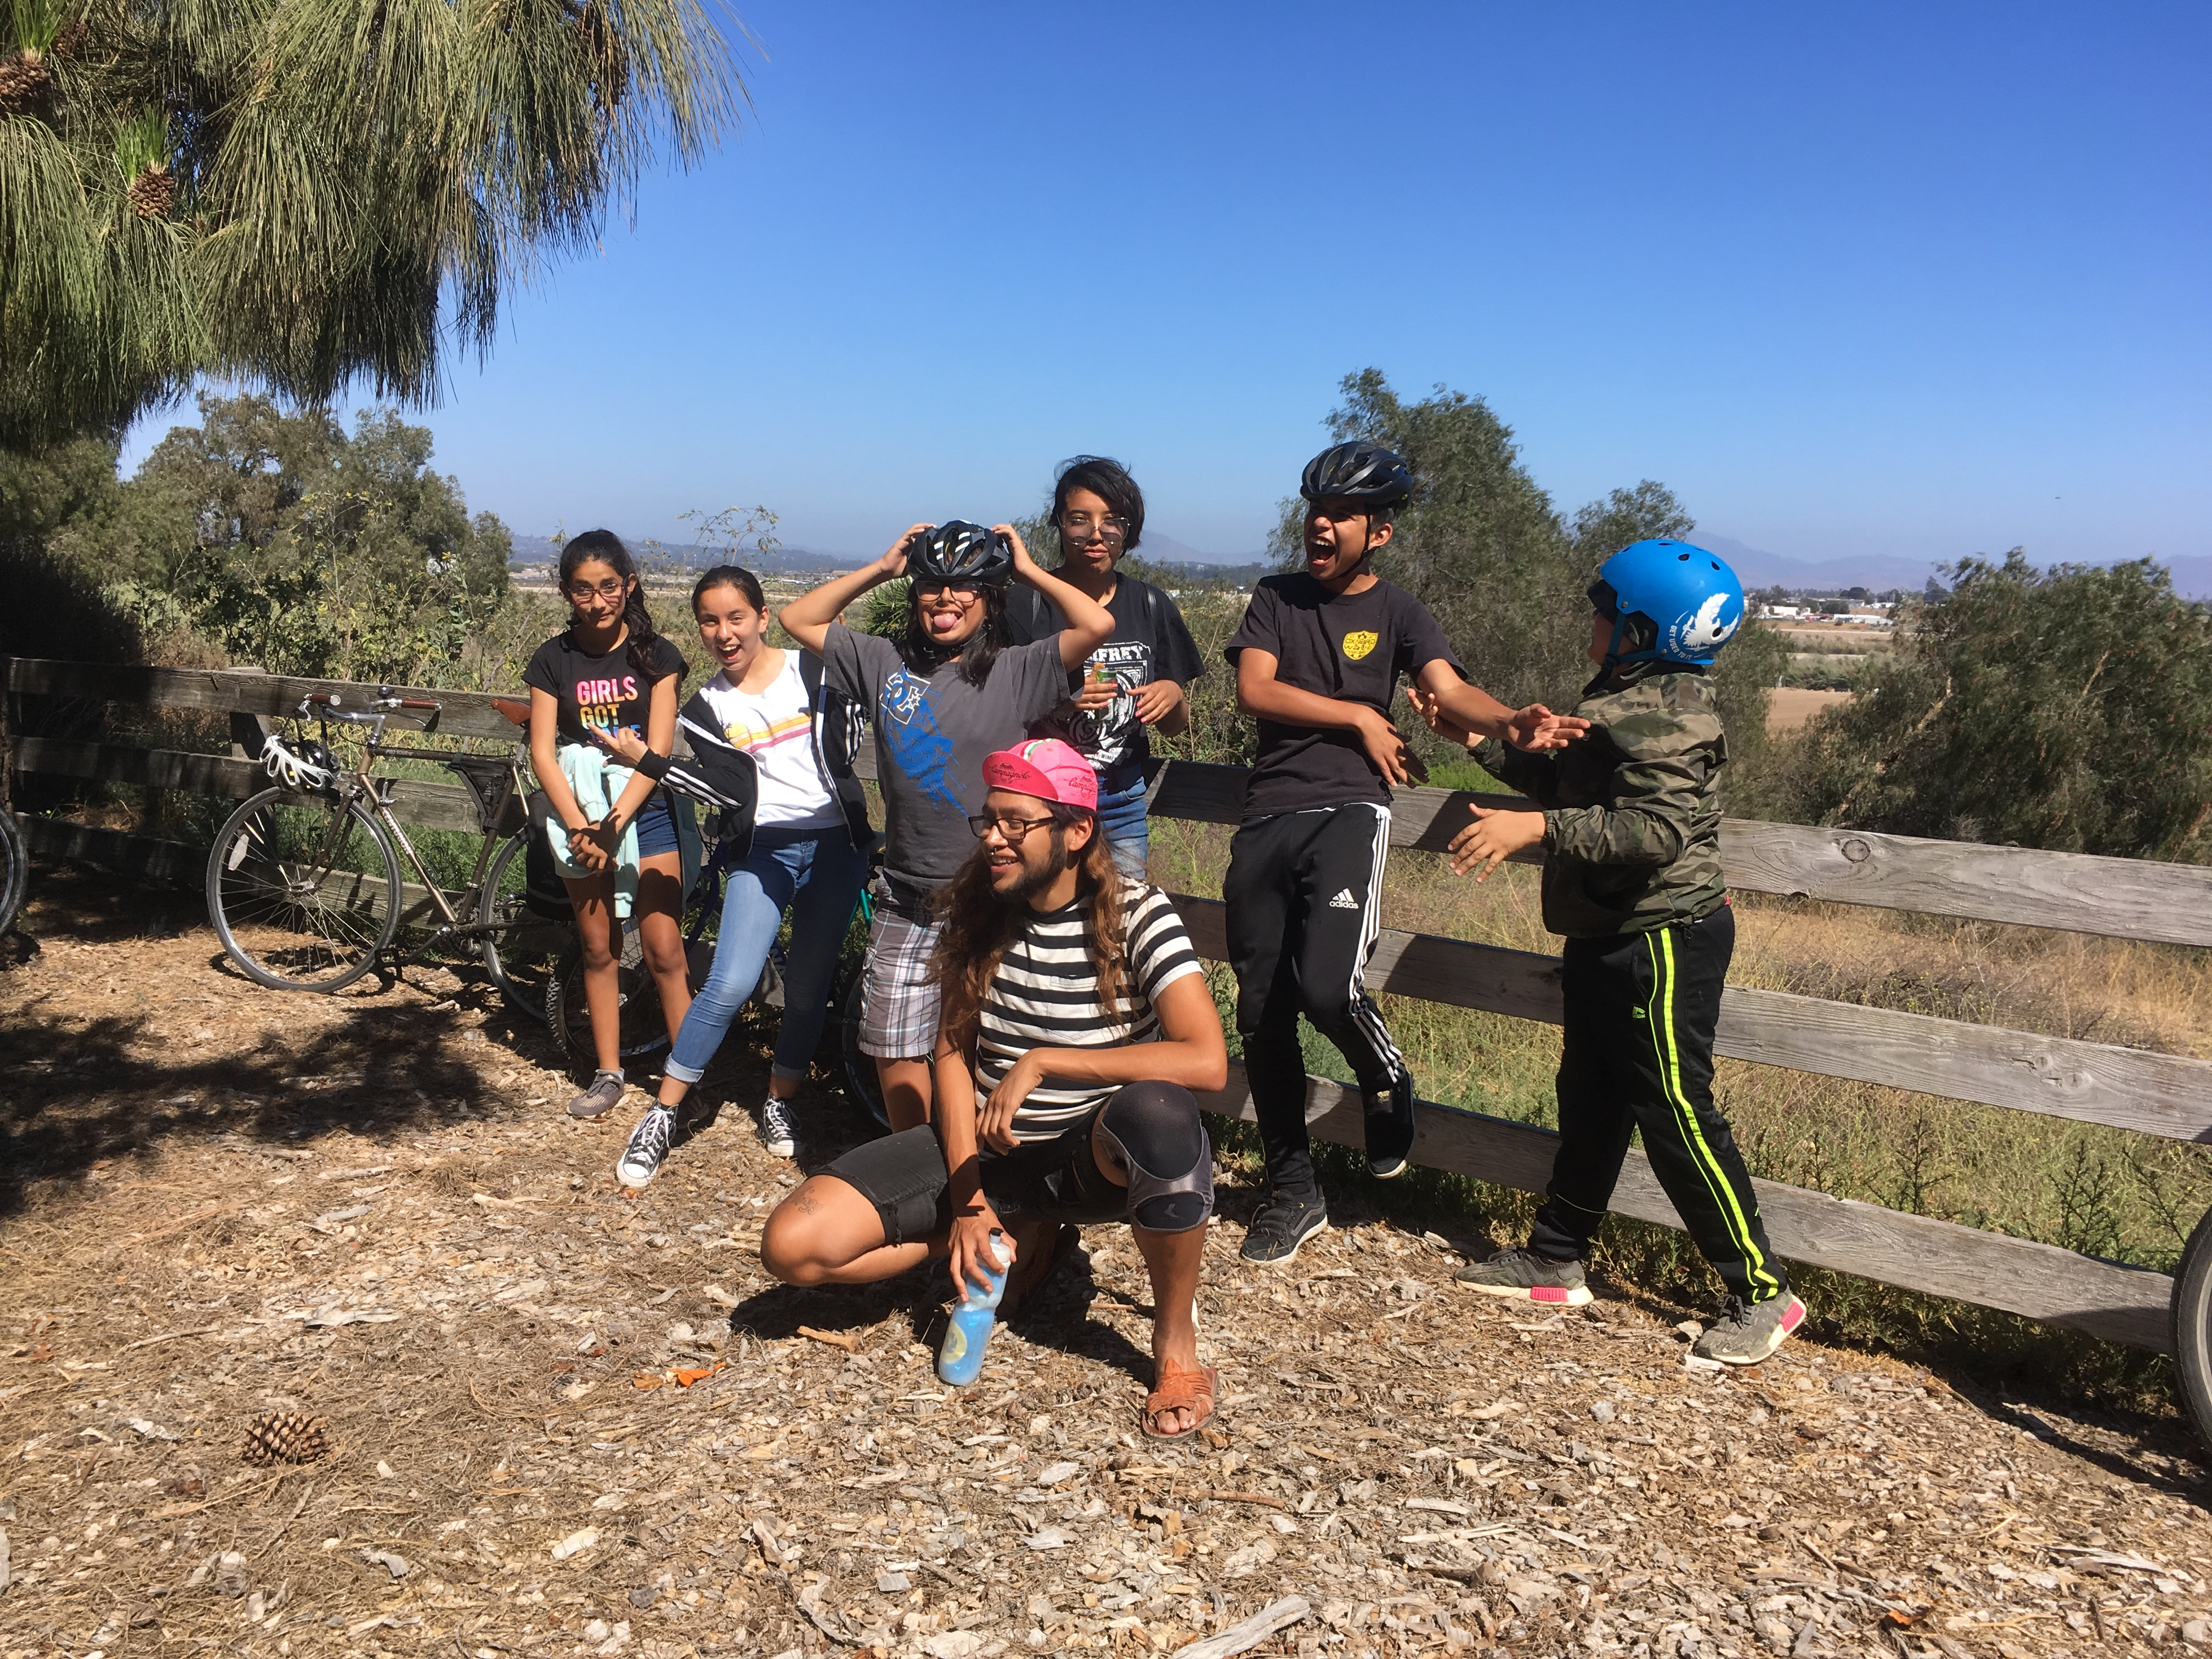 The group on their first ride out form Cabrillo Village, enjoying the trail